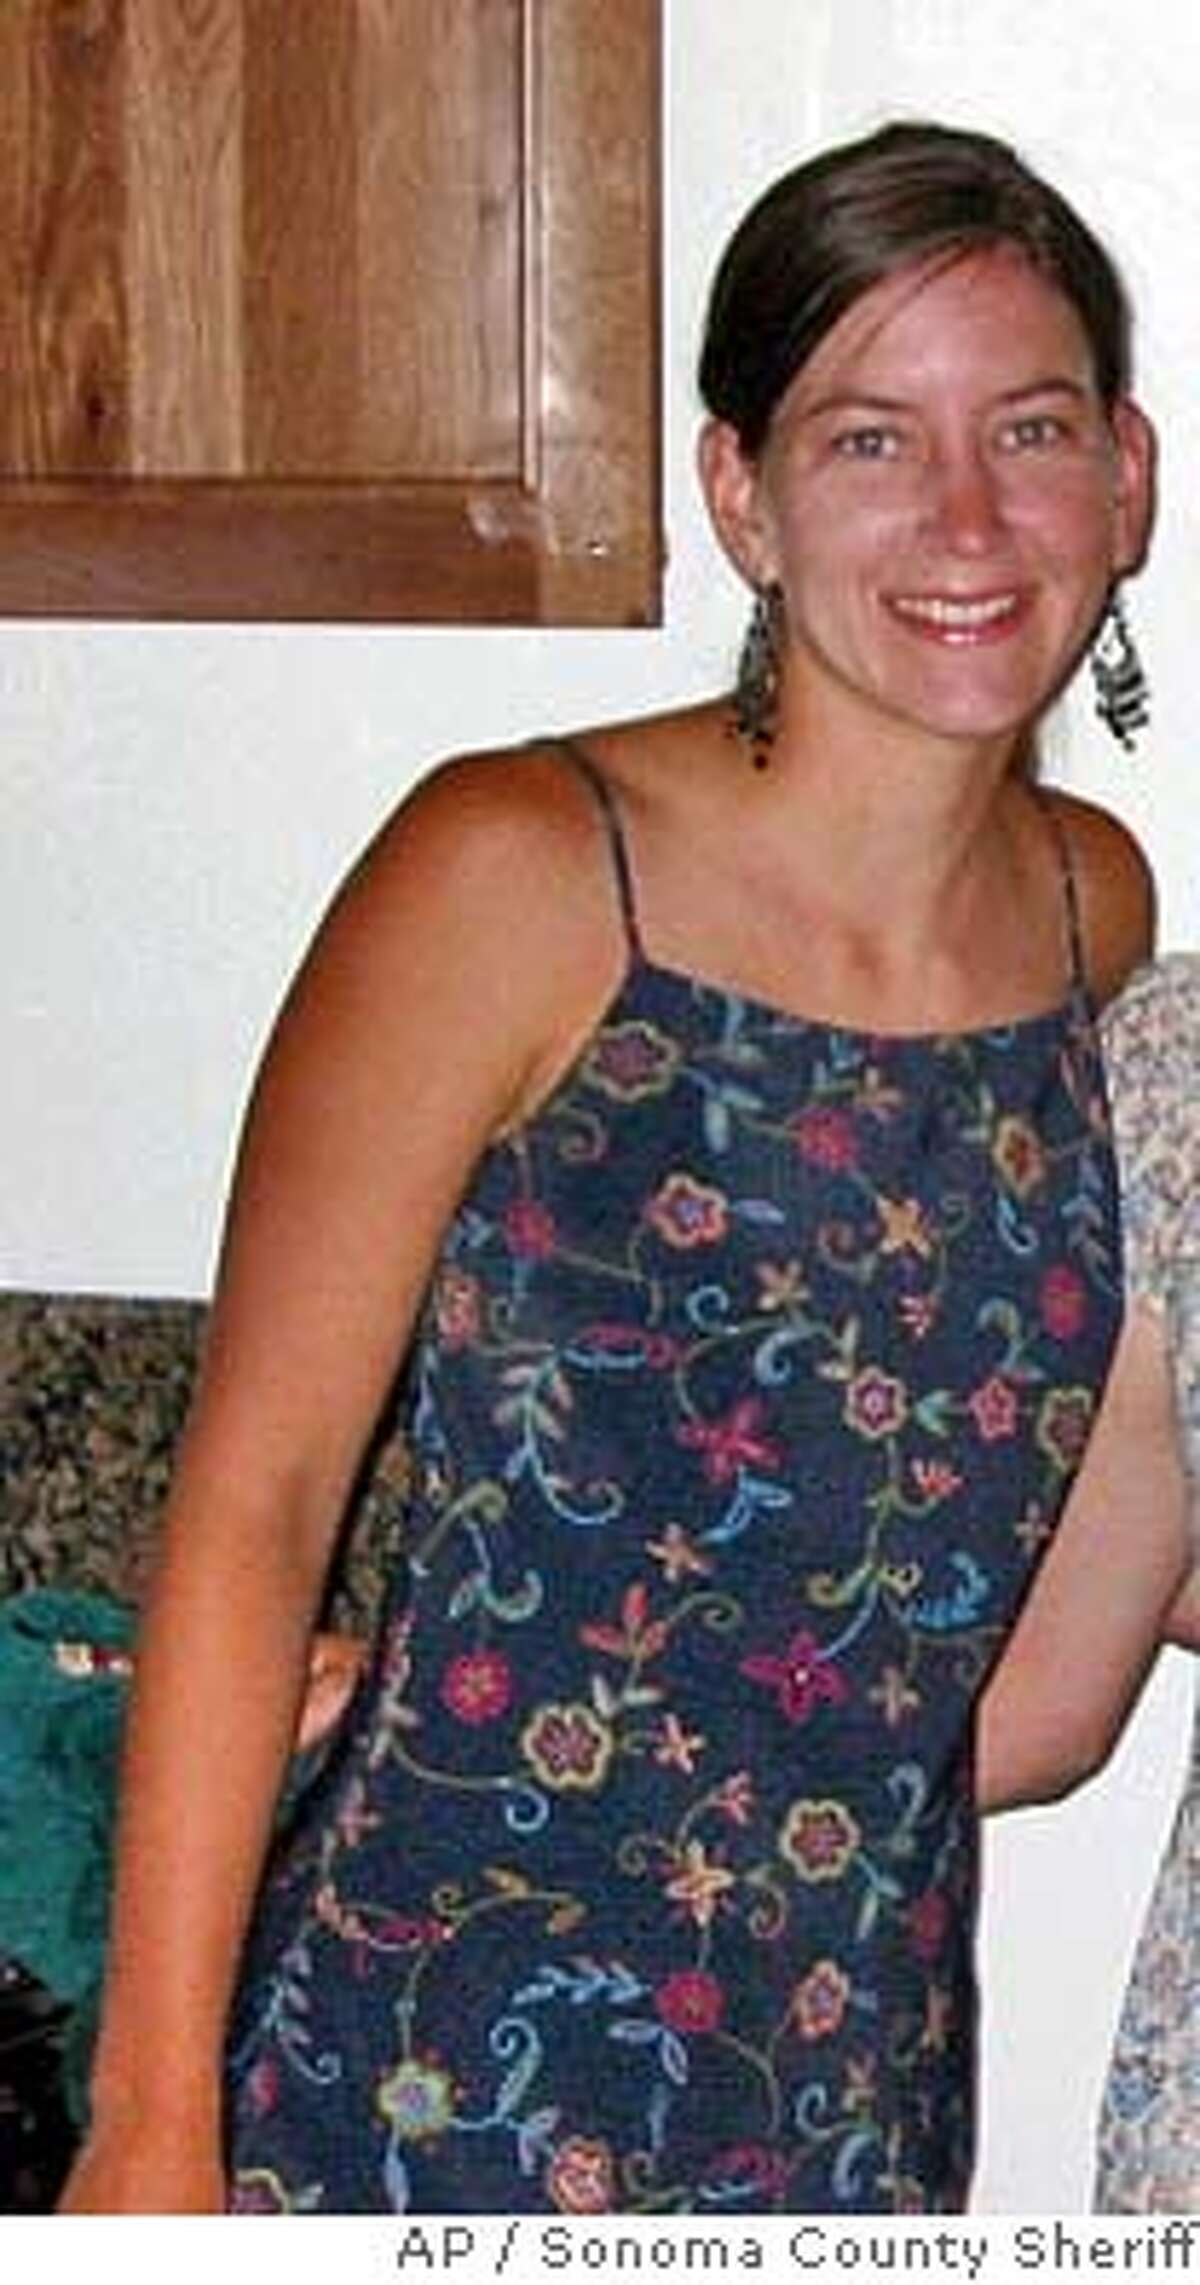 ** FILE ** Lindsay Cutshall is shown in this undated photo. Two camp counselors who were reported missing earlier this week were murdered in their sleep on a Sonoma County beach less than a month before their wedding, authorities said. The bodies of Lindsay Cutshall, 23, and Jason Allen, 26,were discovered in sleeping bags about three miles north of Jenner on Wednesday afternoon, Aug. 18, 2004, when sheriff's deputies were rescuing a stranded hiker, the Sonoma County Sheriff's Department said. (AP Photo/Sonoma County Sheriff) Ran on: 08-21-2004 Two bodies were found at Fish Head Beach in Sonoma County.